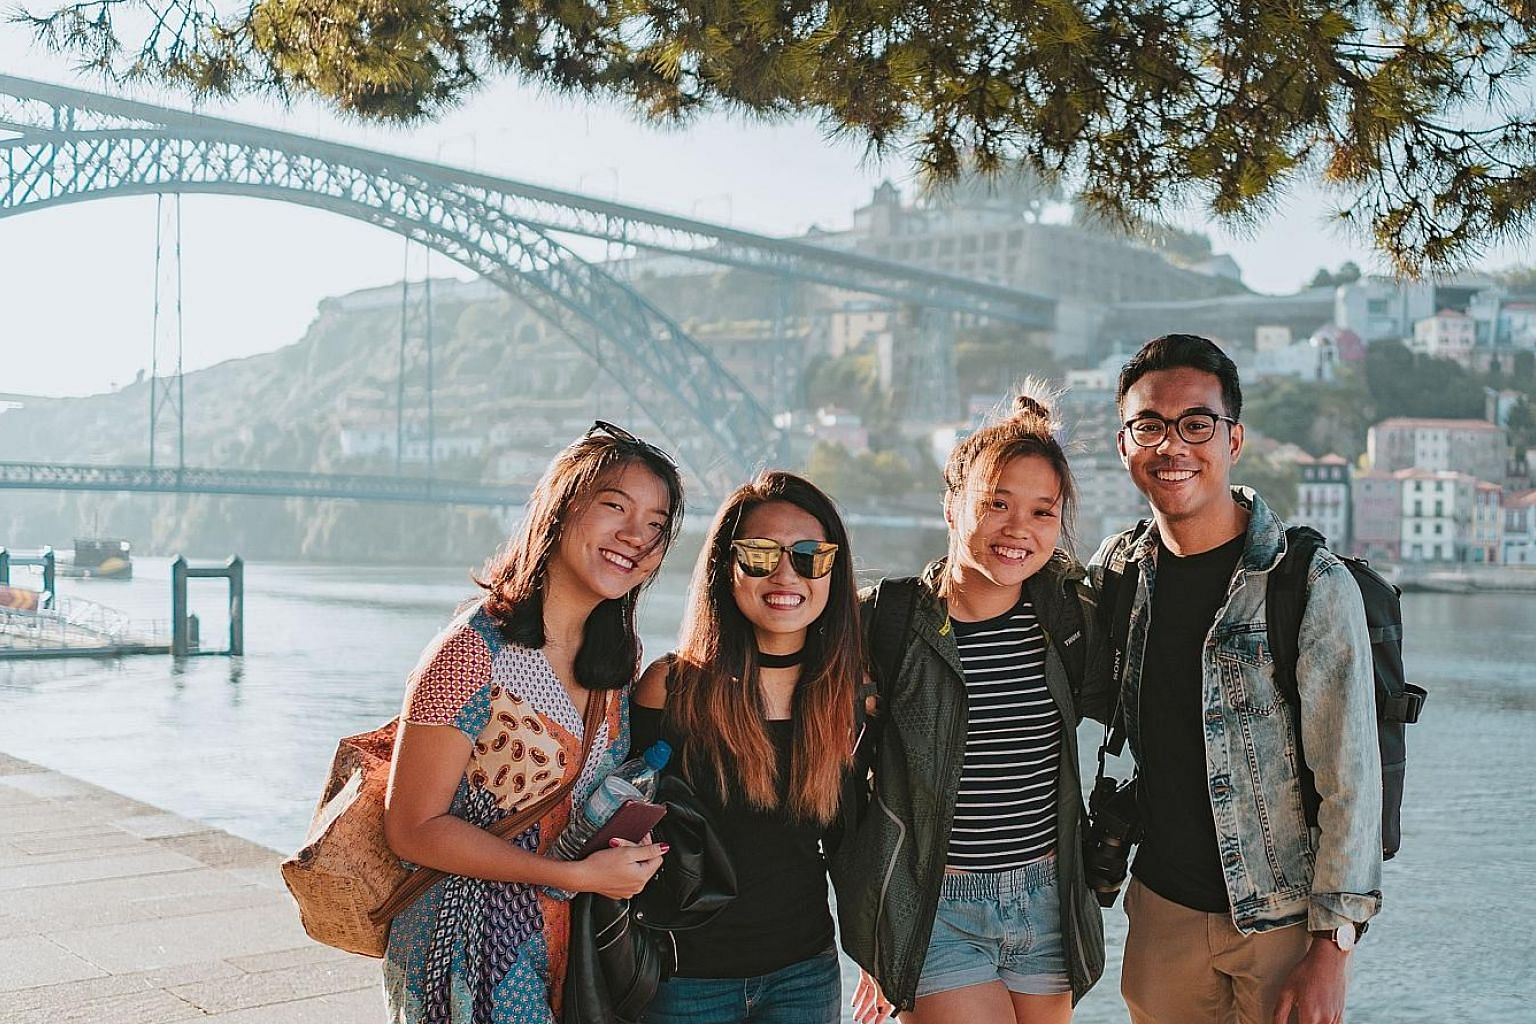 Mr Akif Sanuan visited countries such as Portugal, Switzerland and France to shoot videos and photos for The Travel Intern. After designing a campaign for Tourism Queensland as part of a Klook internship, Ms Kristal Tai took a trip there to experienc